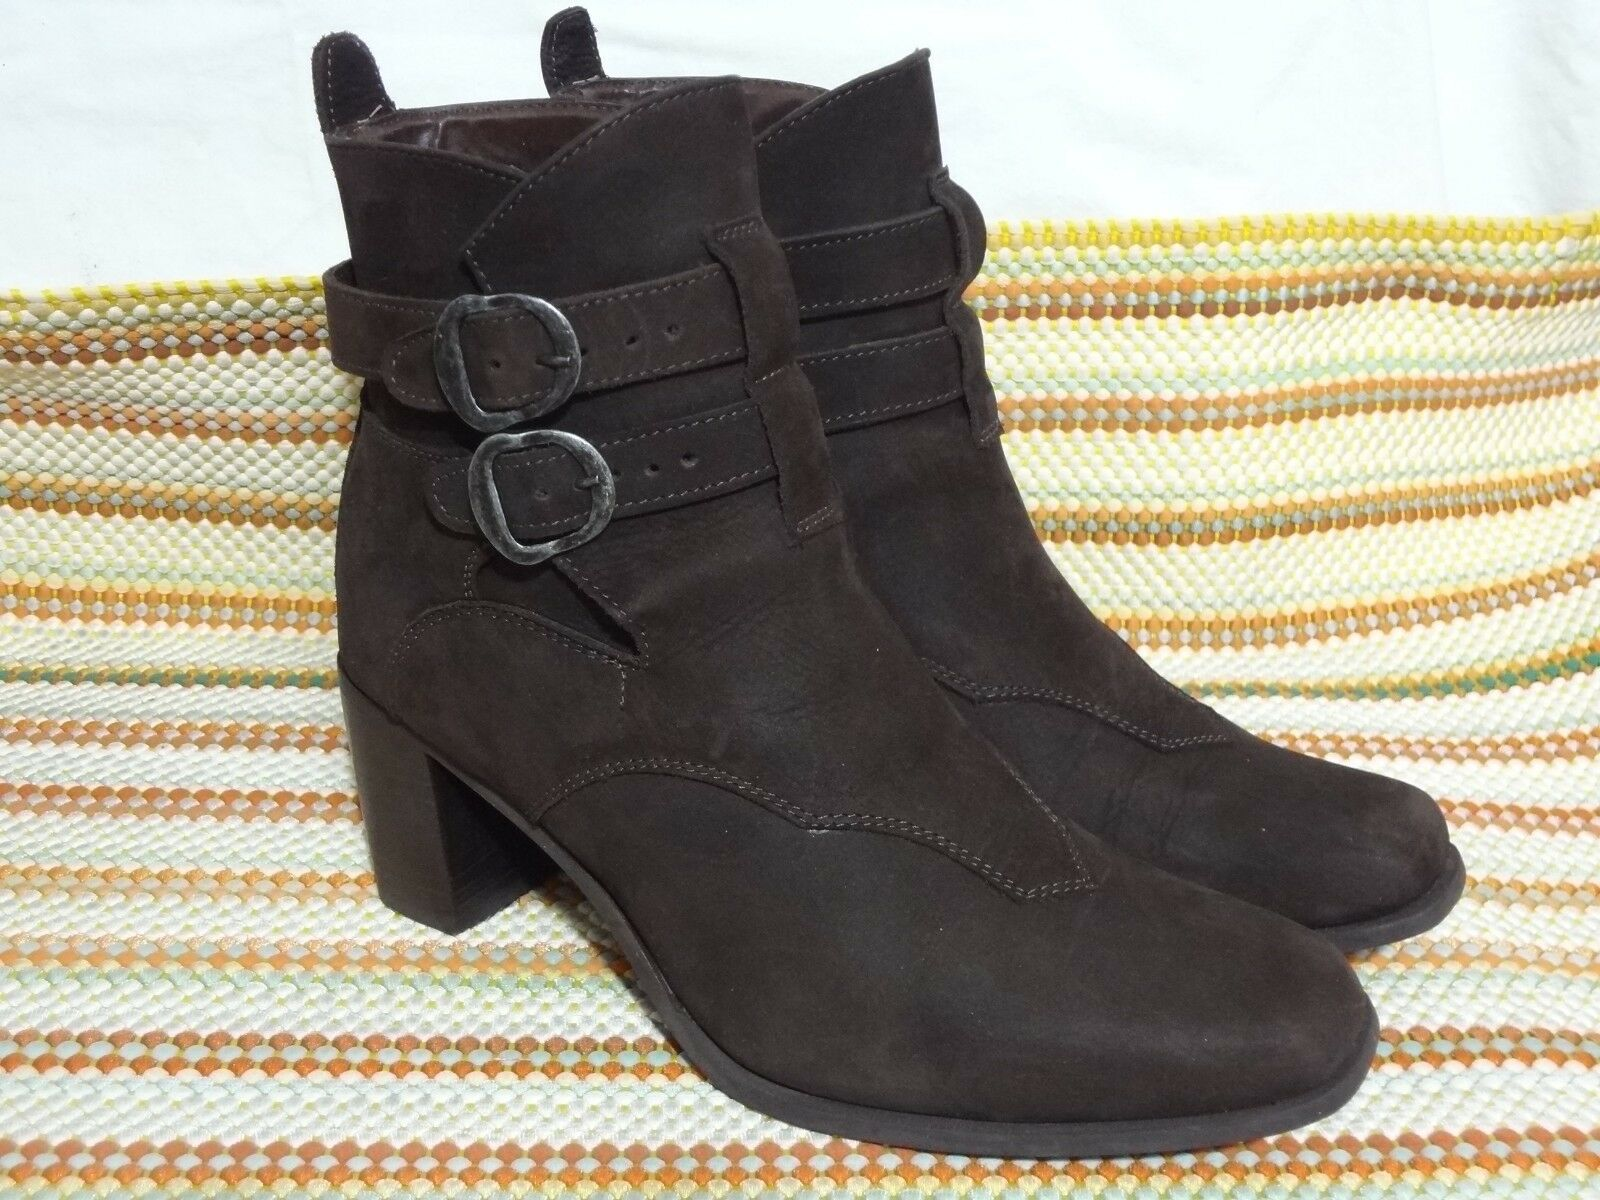 DINGO Damenschuhe ANKLE ANKLE ANKLE SUEDE Stiefel BUCKLE BROWN SIZE US 8.5 M EUC ba403f